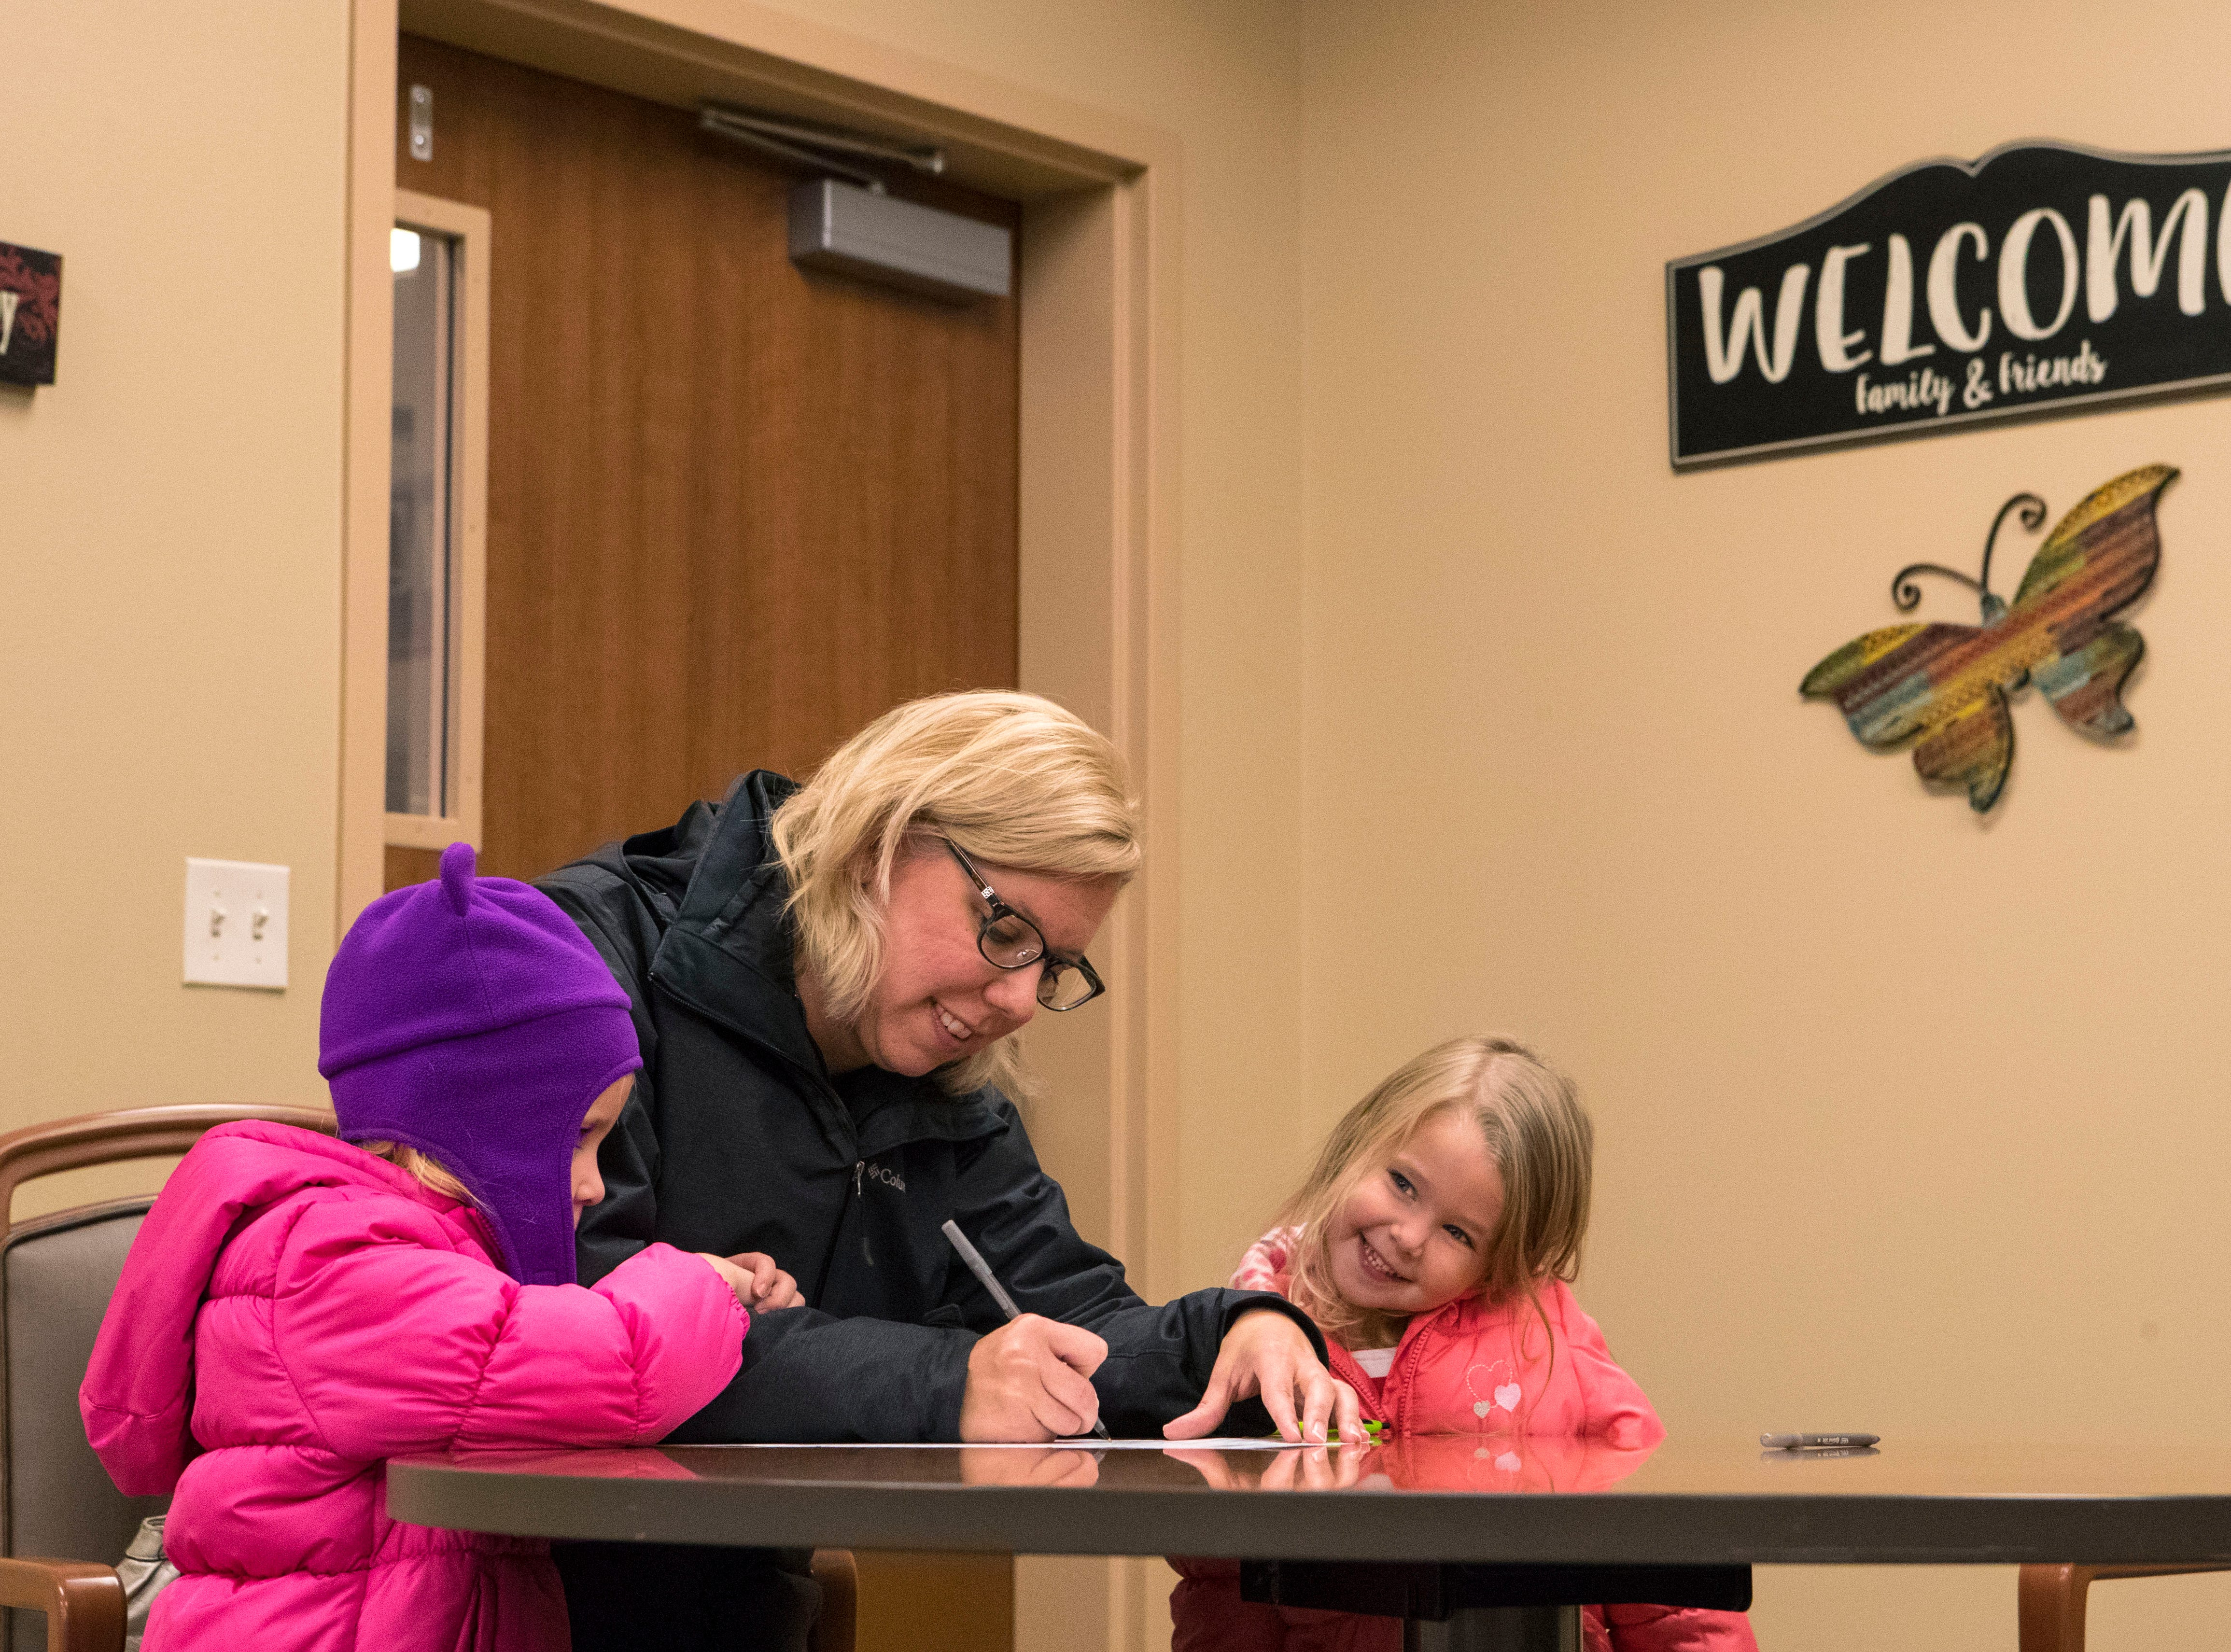 Liza Schnabel fills out her ballot with her daughters Katherine, 3, and Audrey, 4, next to her at Avera Prince of Peace Retirement Community in Sioux Falls, S.D., Tuesday, Nov. 6, 2018.